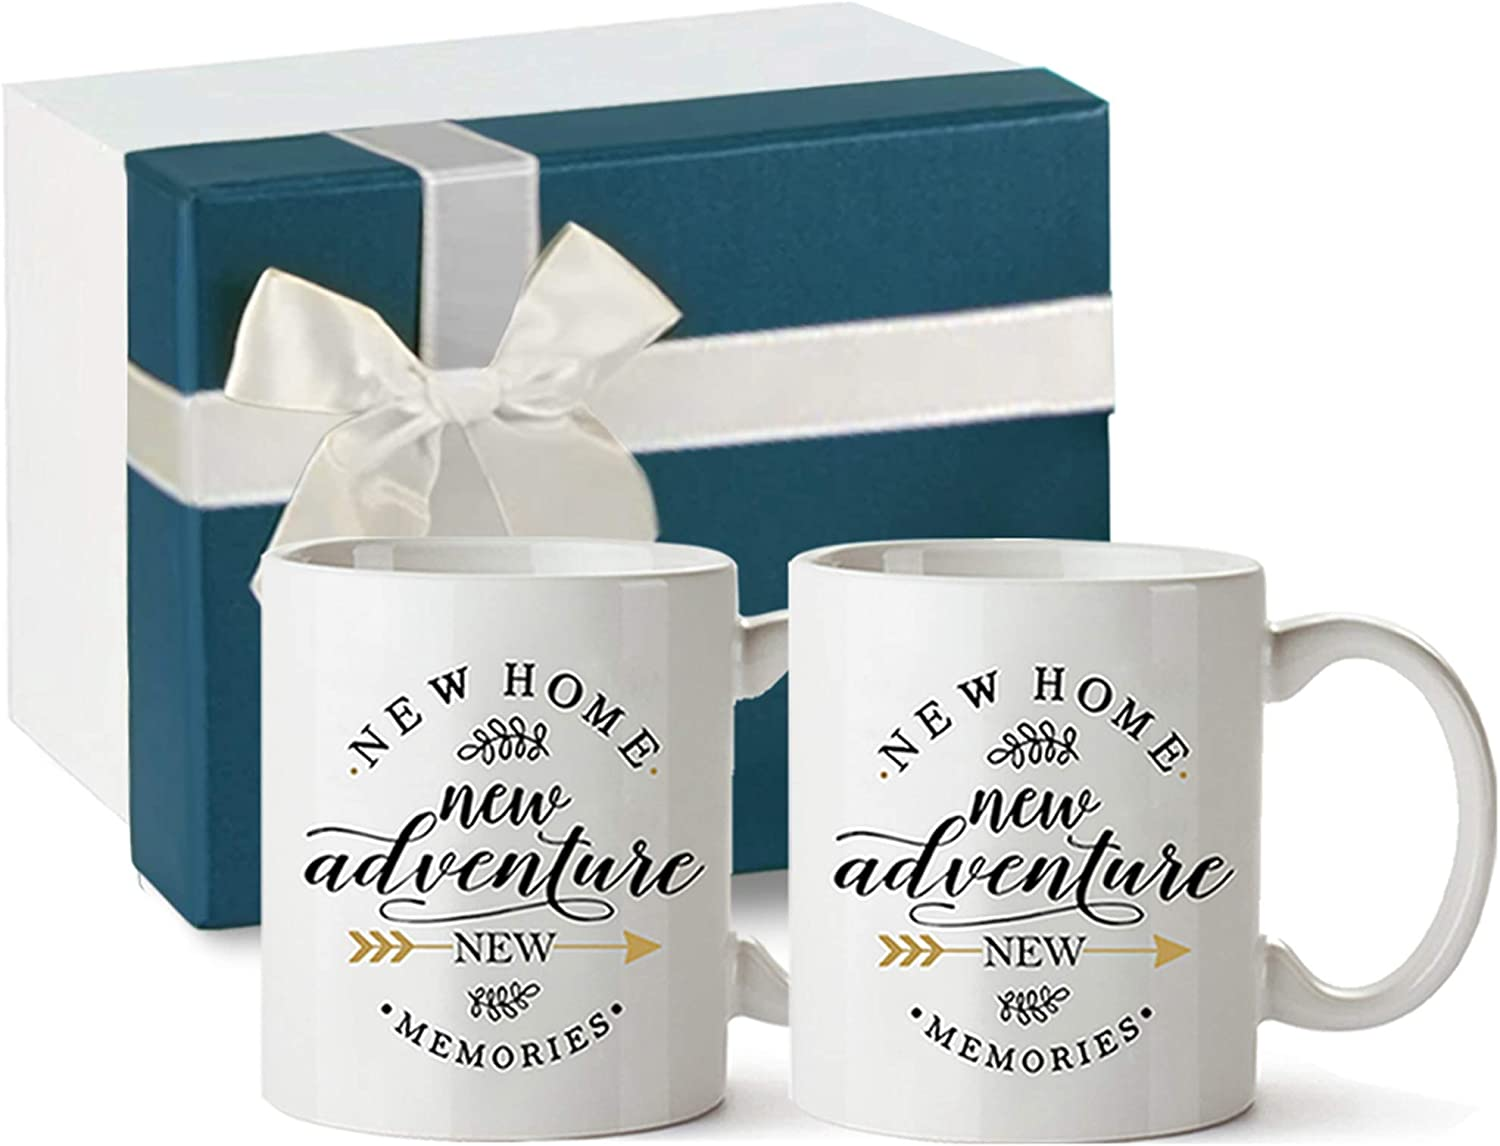 Amazon Com Tom Boy Housewarming Gifts For New Home Owner House Warming Presents For Friends And Couple New Adventure New Memories 2 Pack Coffee Mugs 11oz Kitchen Dining